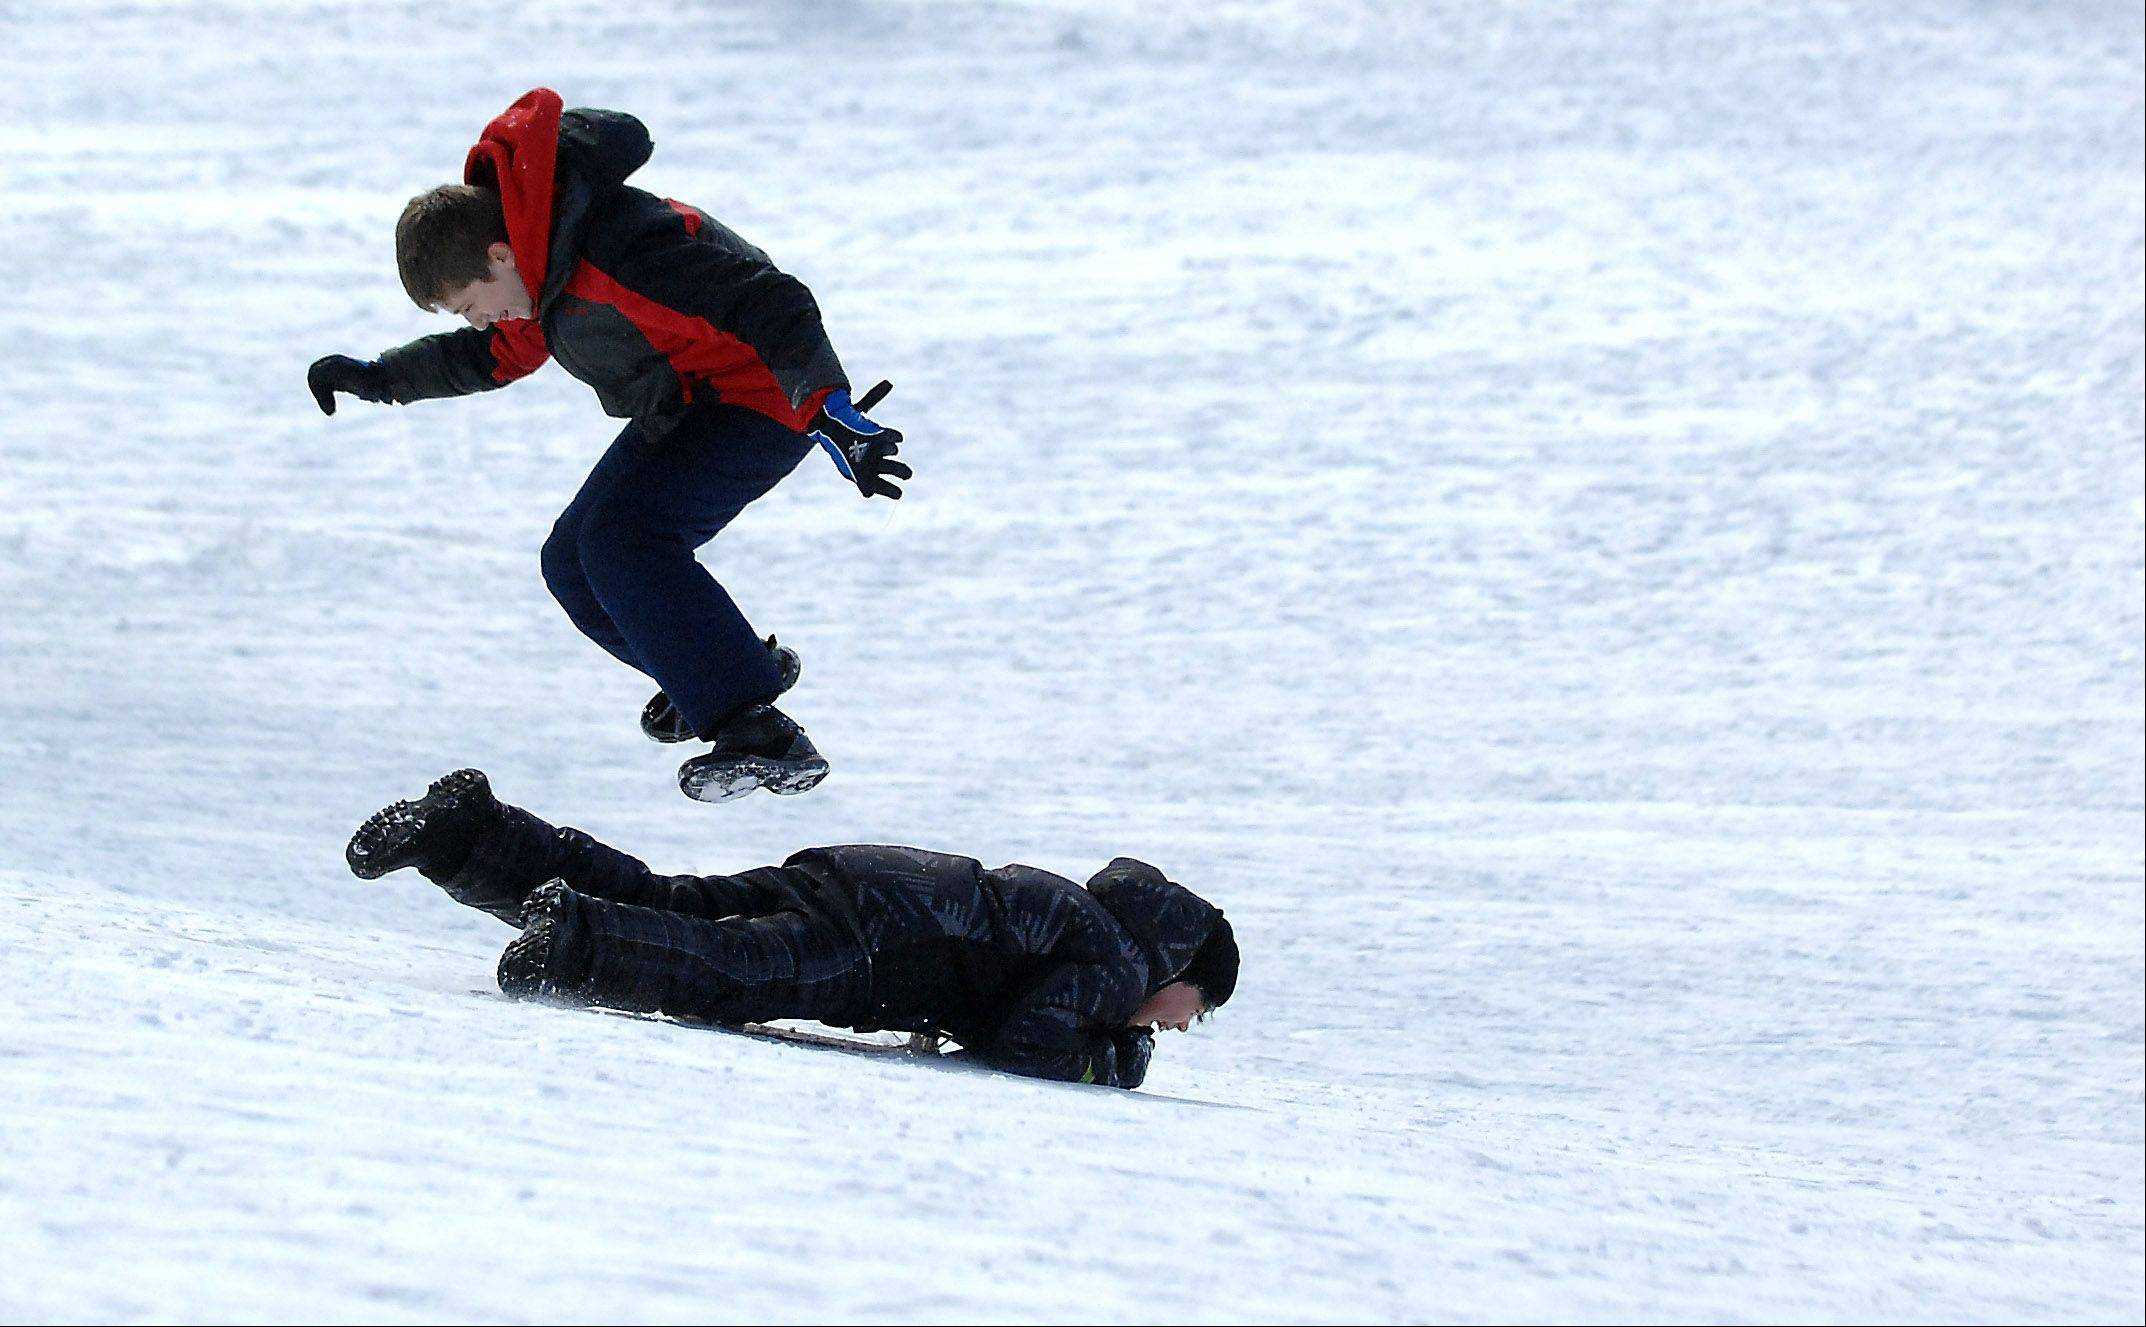 Tony Khouri, 13, of Aurora leaps over friend Will Luetkehans, 12, of DeKalb as he careens down the sledding hill at Fabyan Forest Preserve in Geneva Thursday.